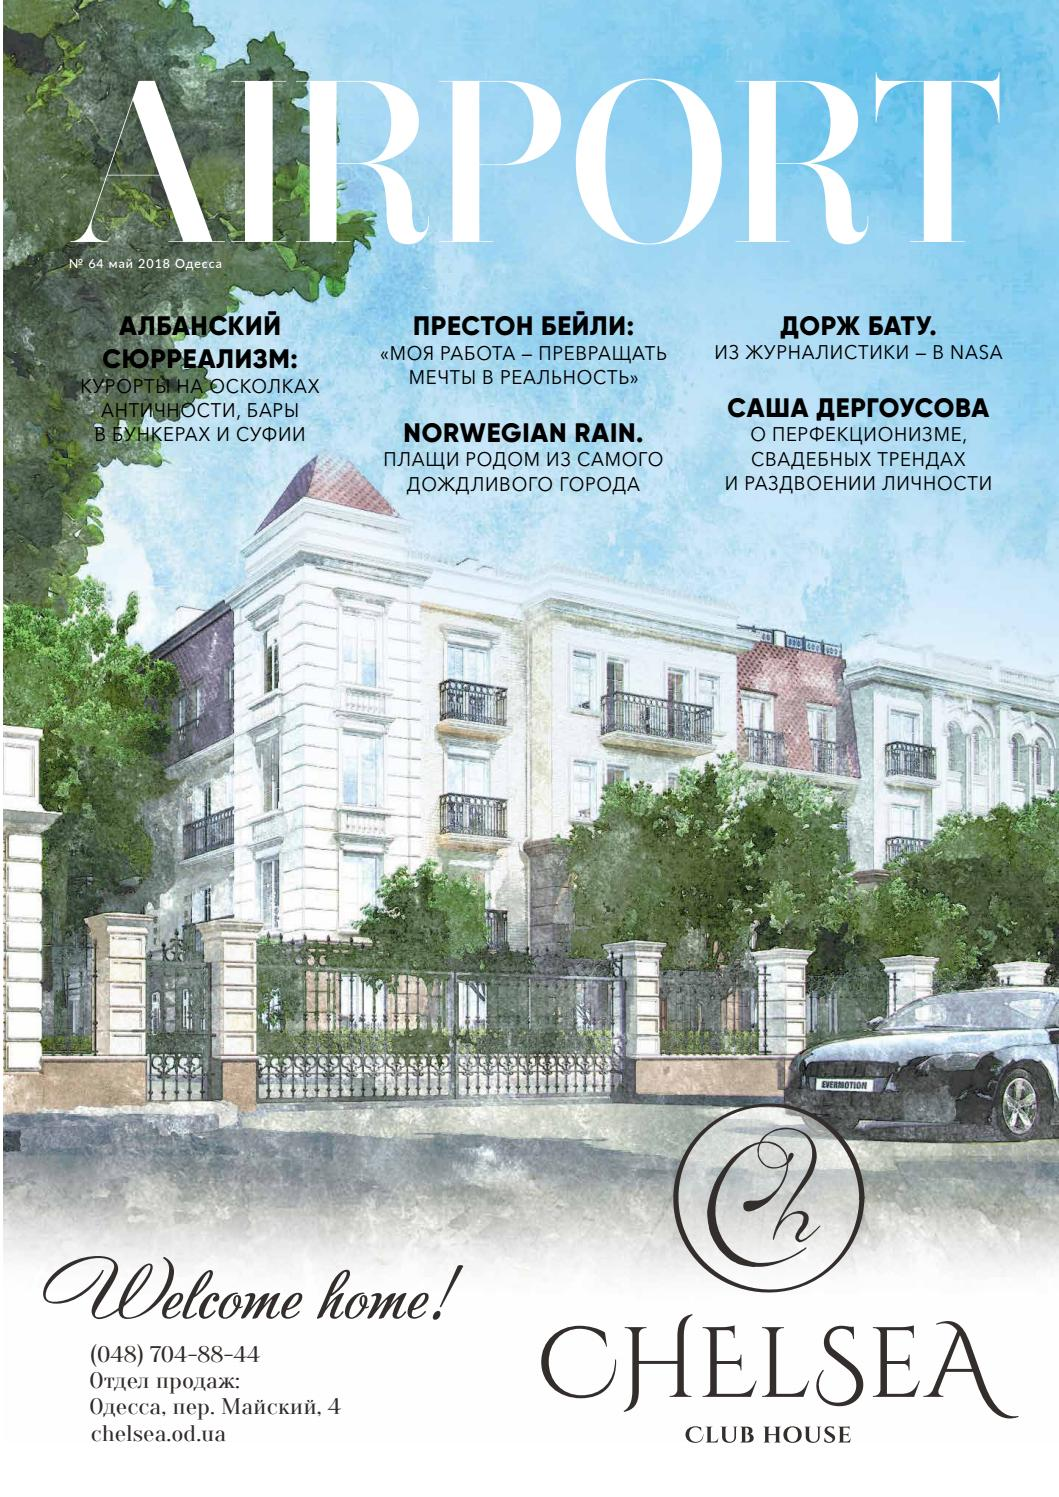 Salon D Ejardin Génial May 18 by Airport Magazine Odessa issuu Of 30 Beau Salon D Ejardin